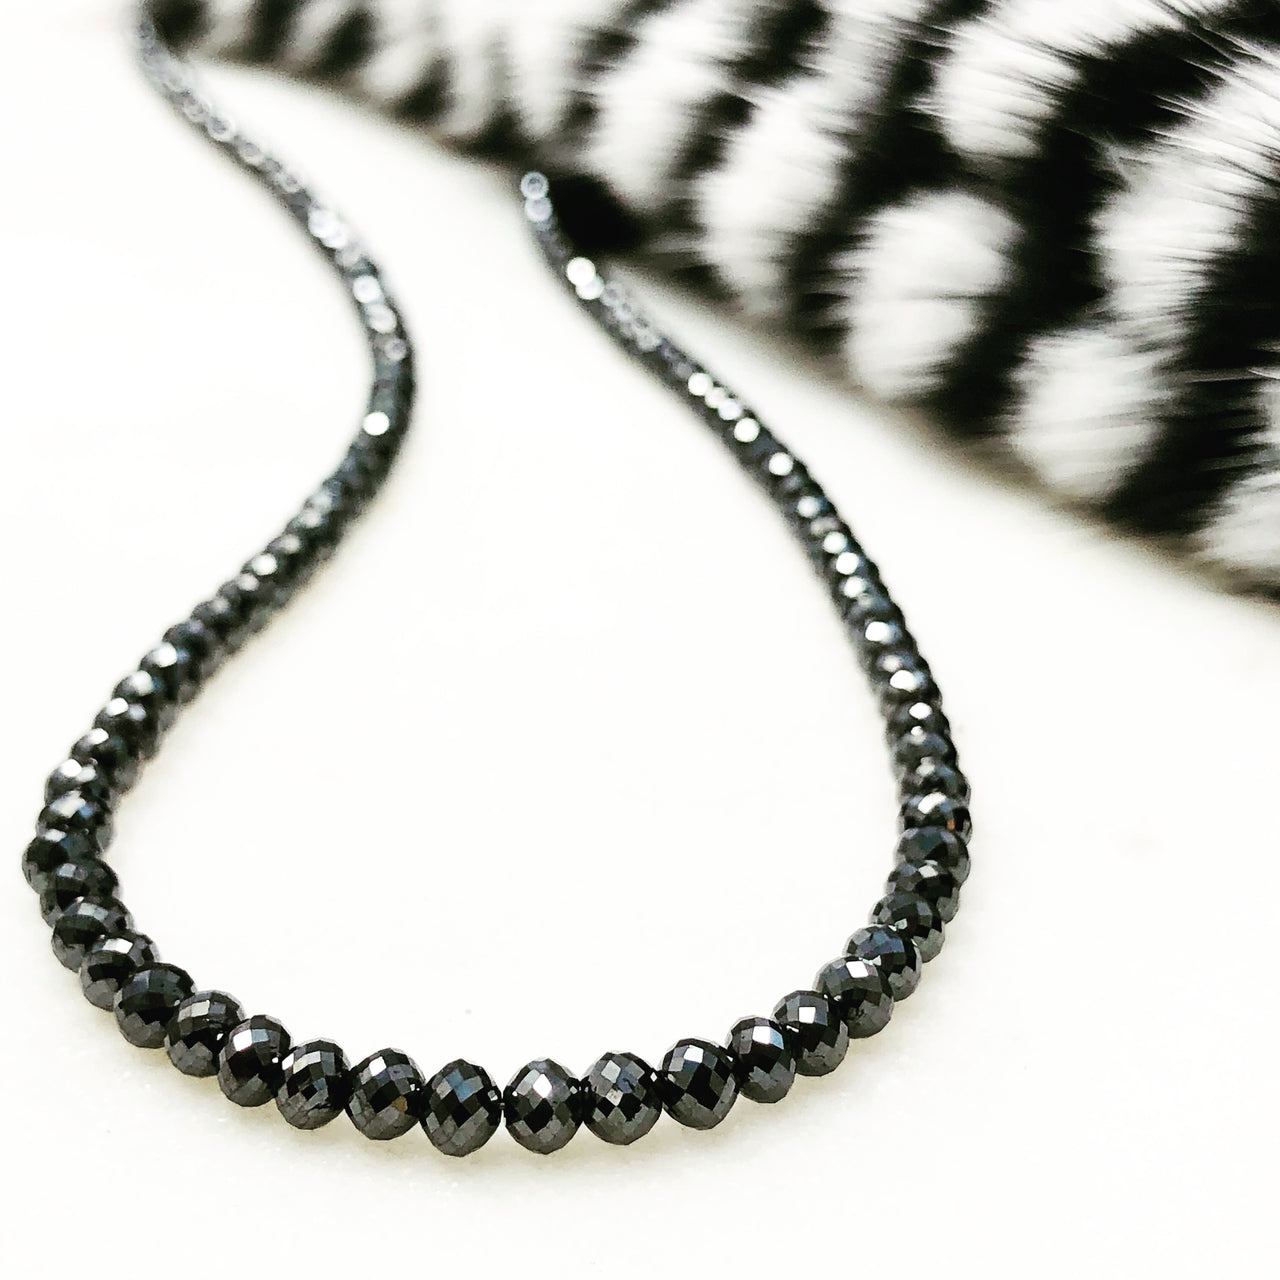 14k White Gold Black Diamond Necklace.